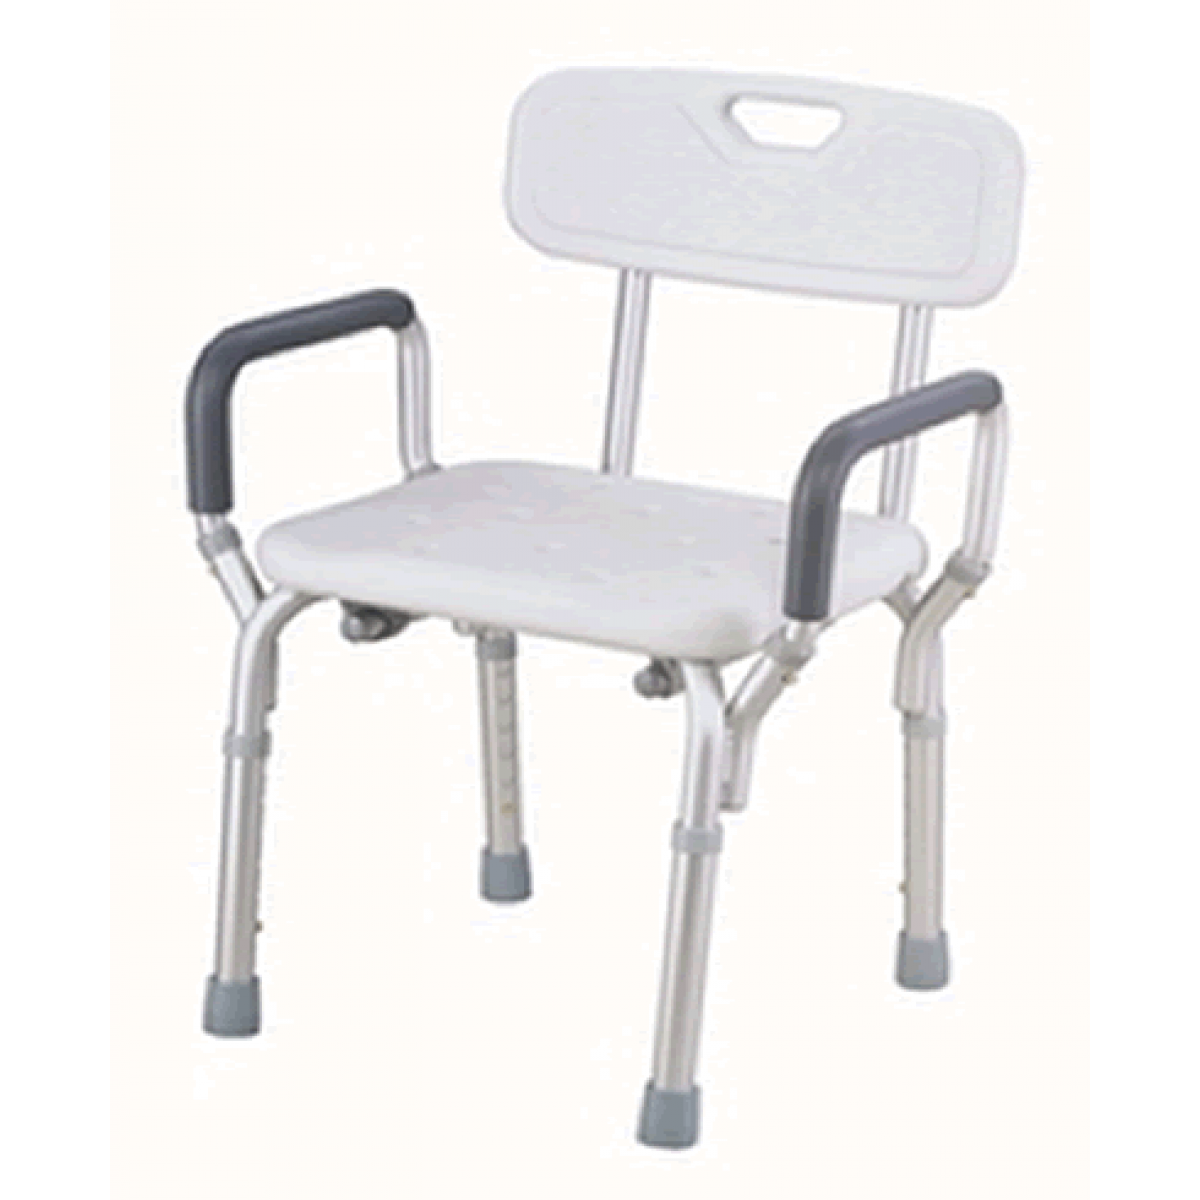 Merits shower chair bath bench with arms on sale with unbeatable prices Bath bench